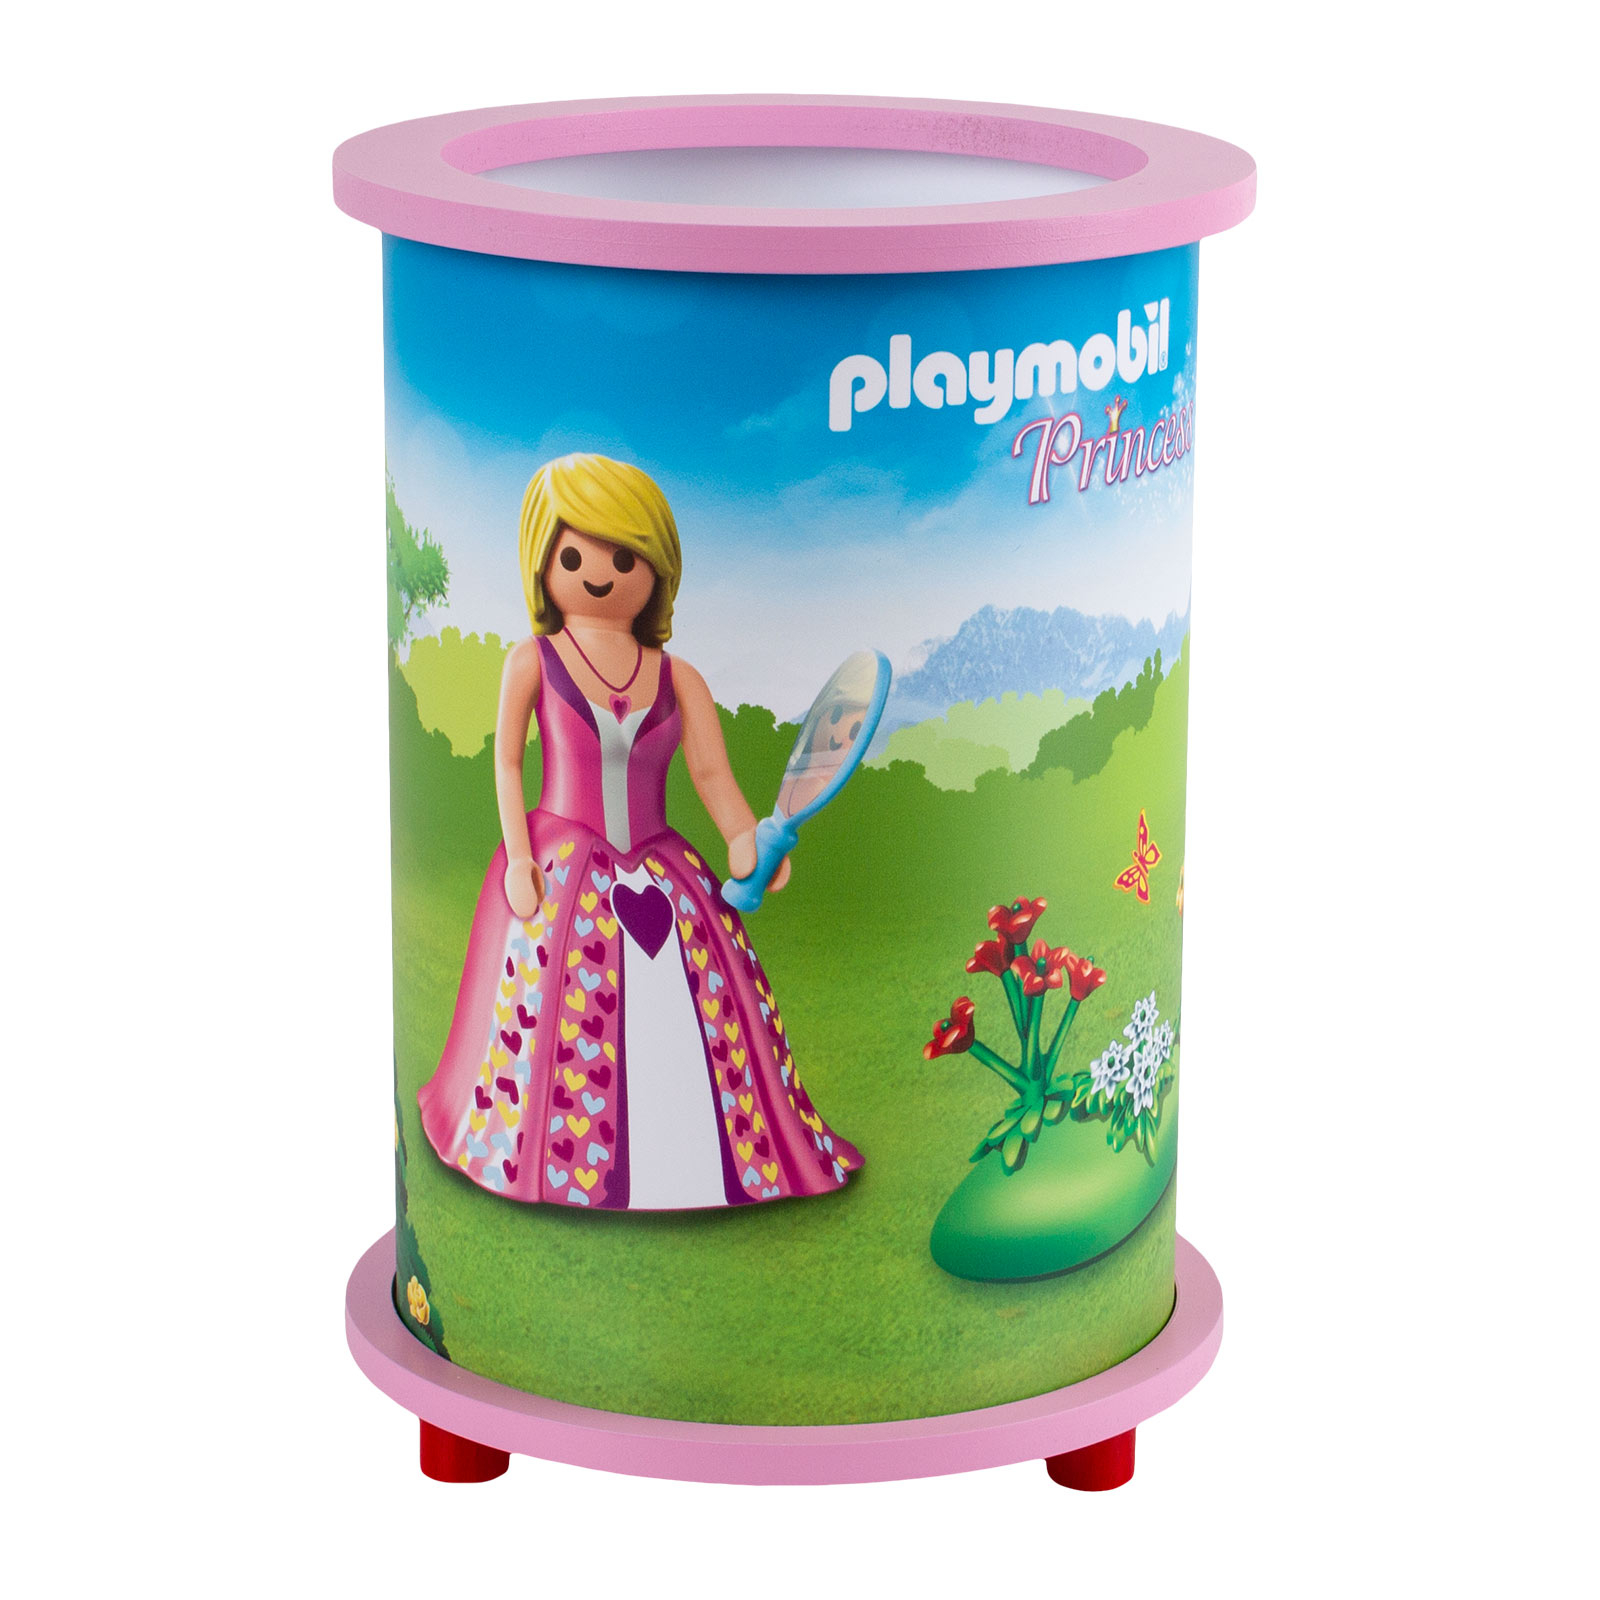 Tafellamp 25/15 PLAYMOBIL Princess